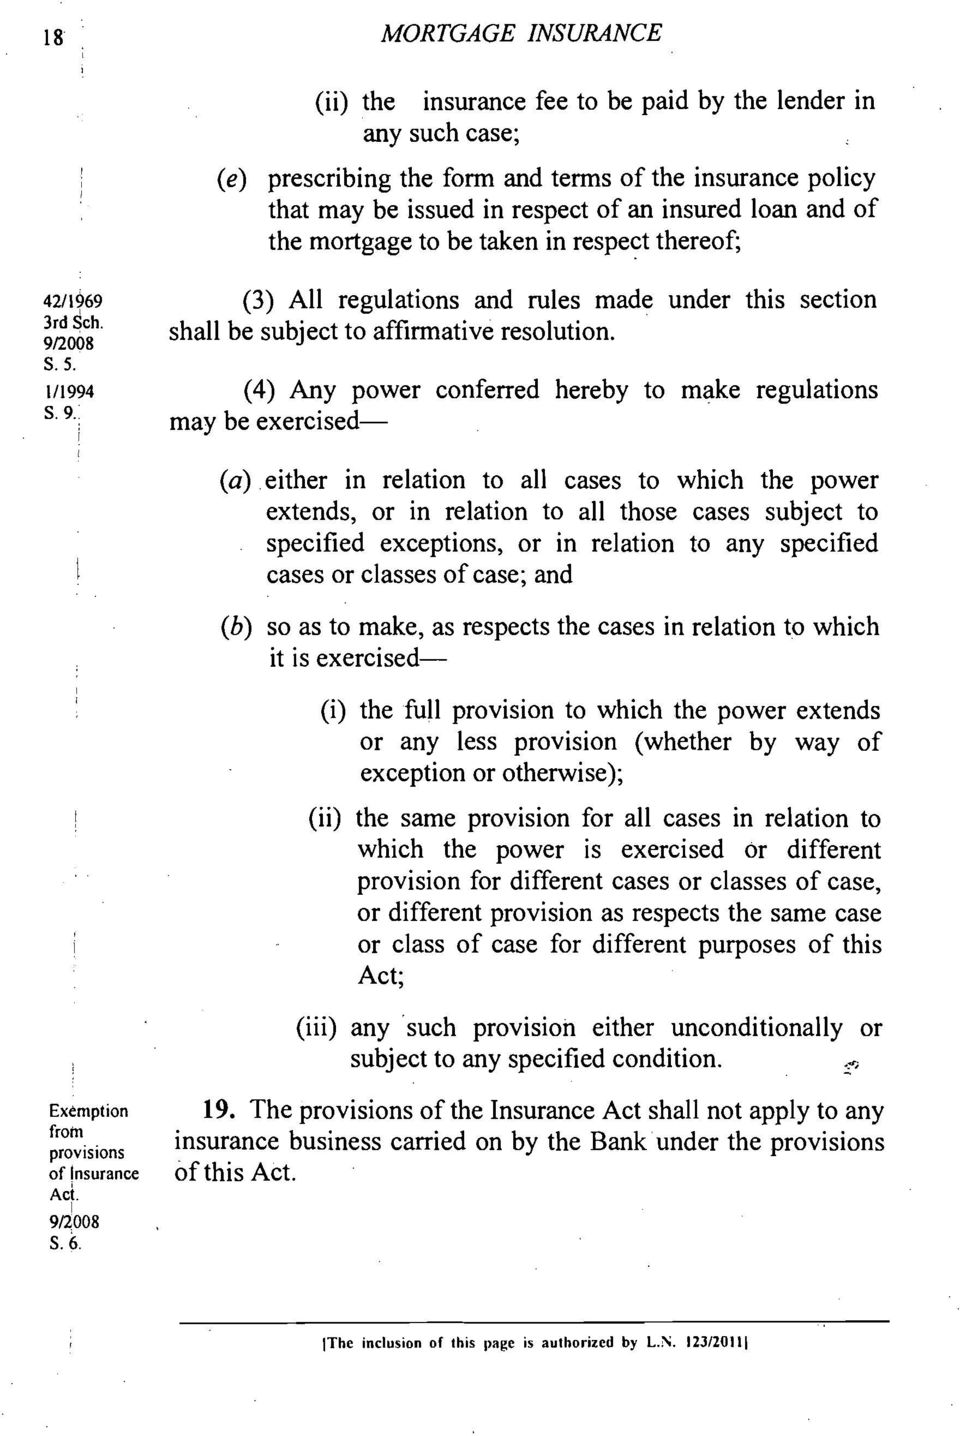 (4) Any power conferred hereby to make regulations may be exercised- (a) either in relation to all cases to which the power extends, or in relation to all those cases subject to specified exceptions,